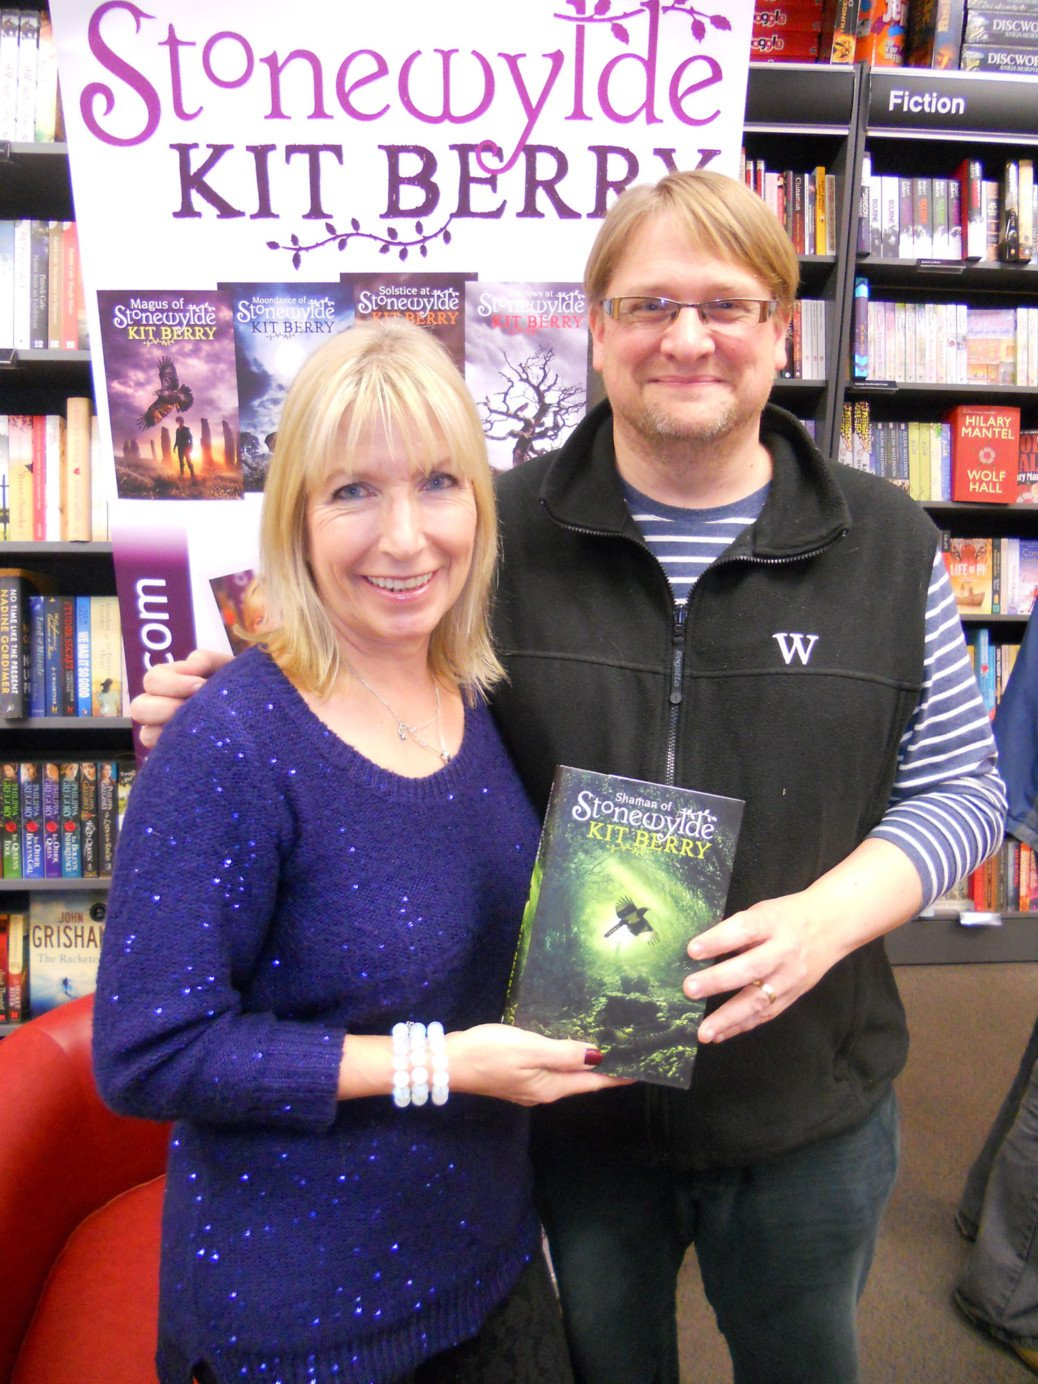 Kit Berry with fan at Waterstones Yeovil